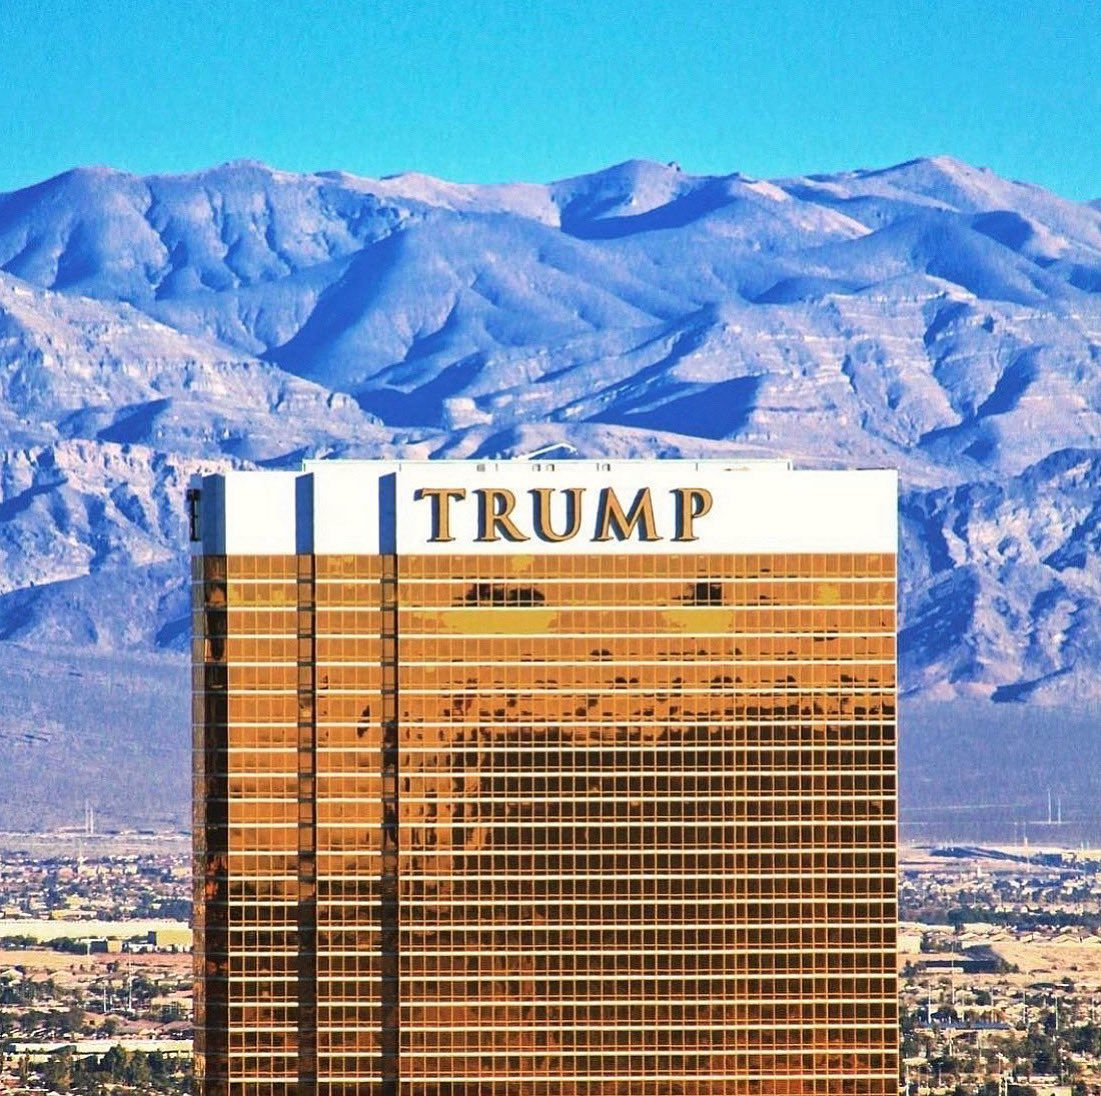 Las Vegas: Where the glow of the city's architecture rivals that of Mother Nature's skyline @TrumpLasVegas